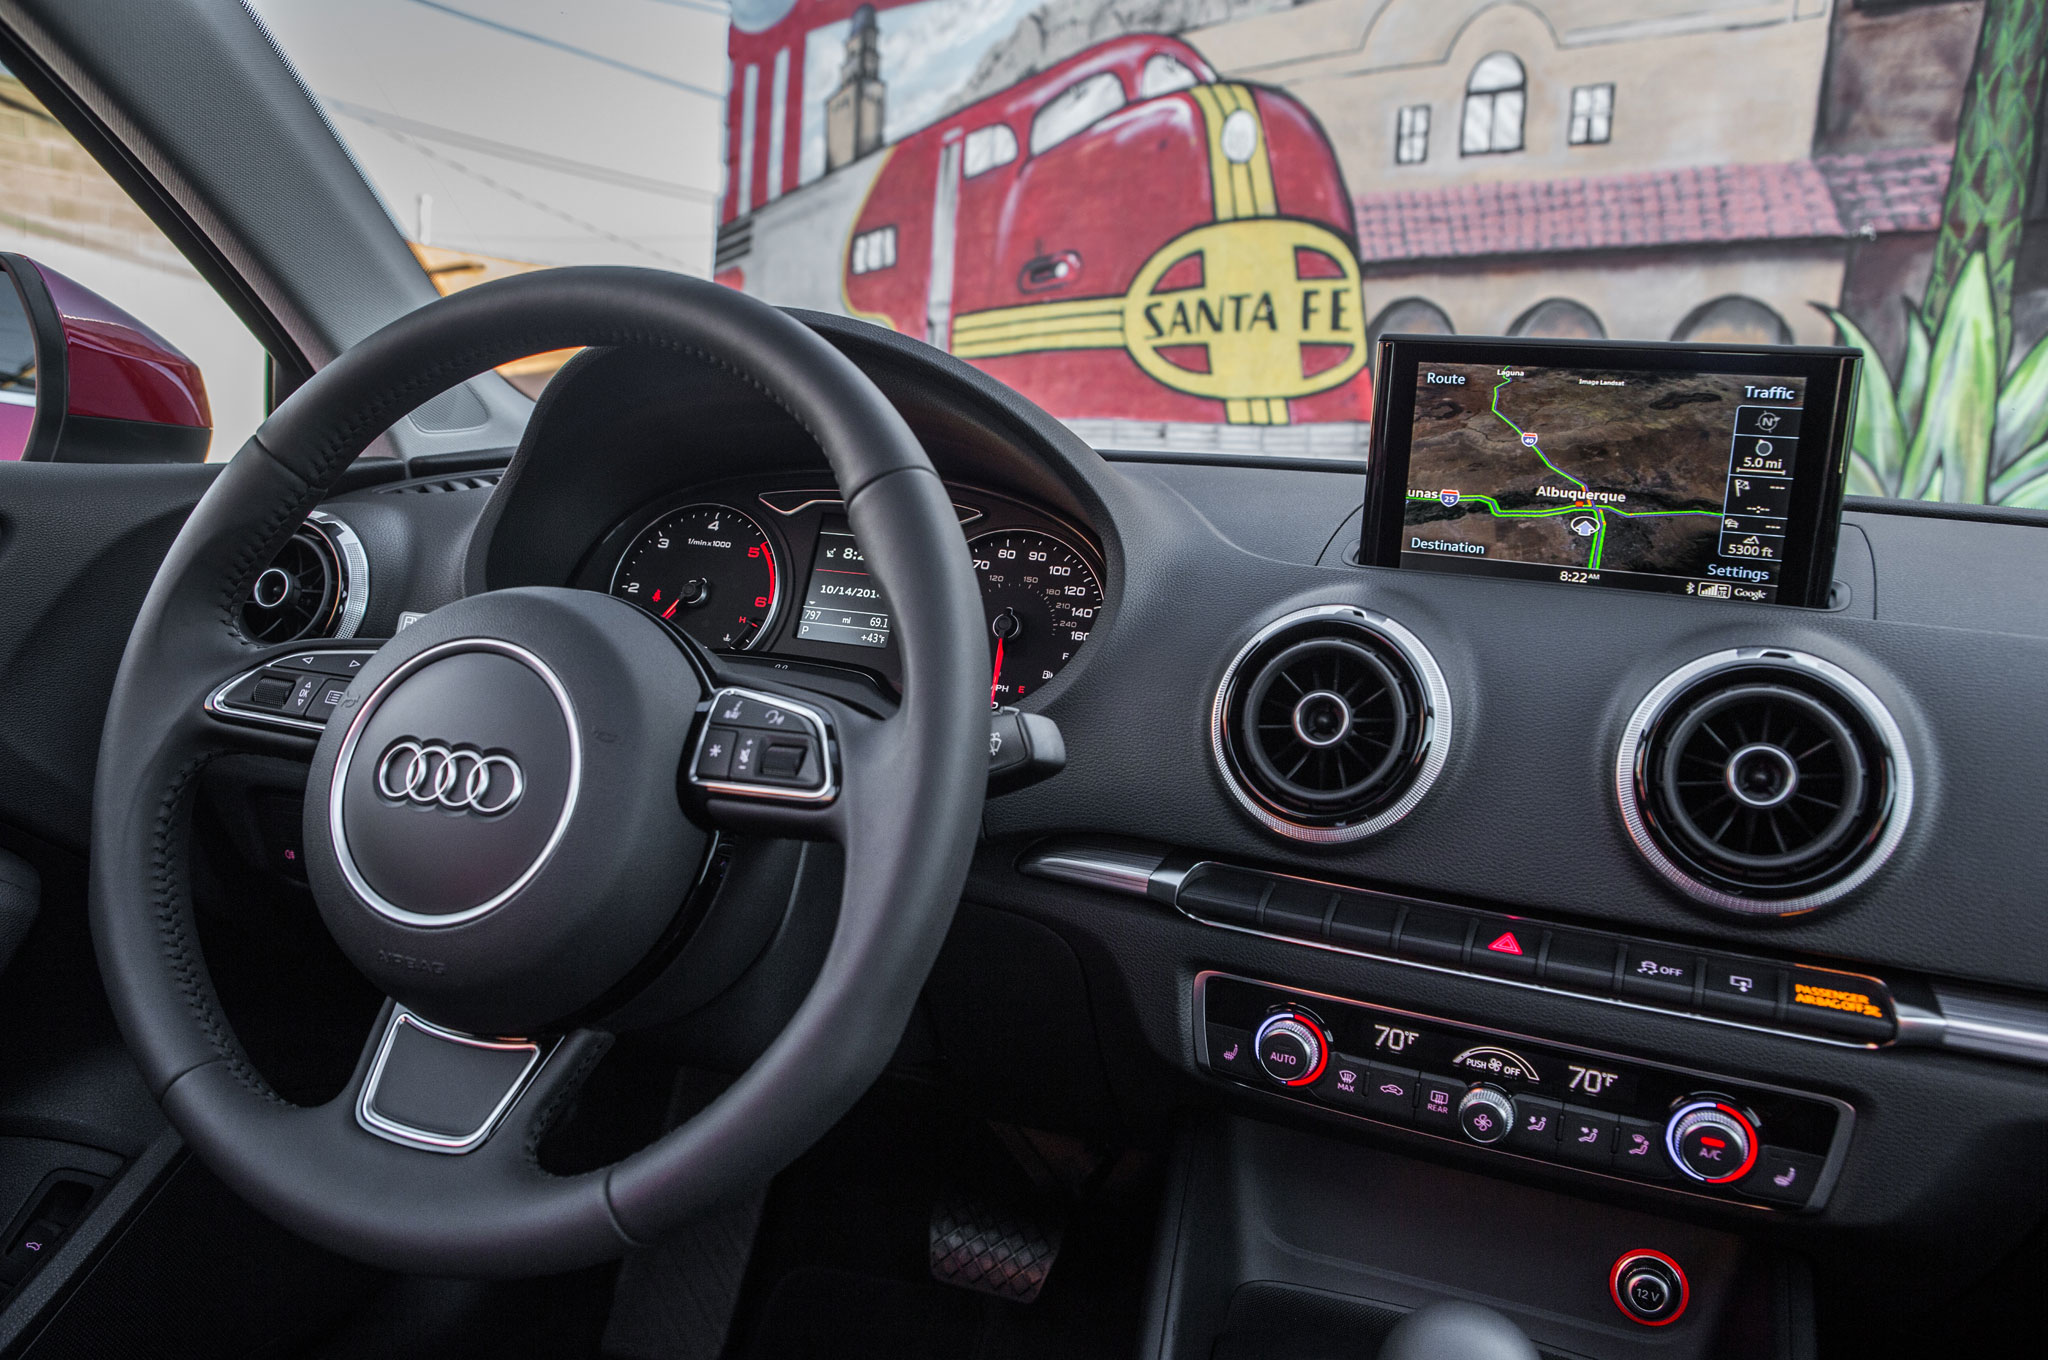 2015 Audi A3 Pricing and Options List Detailed ...